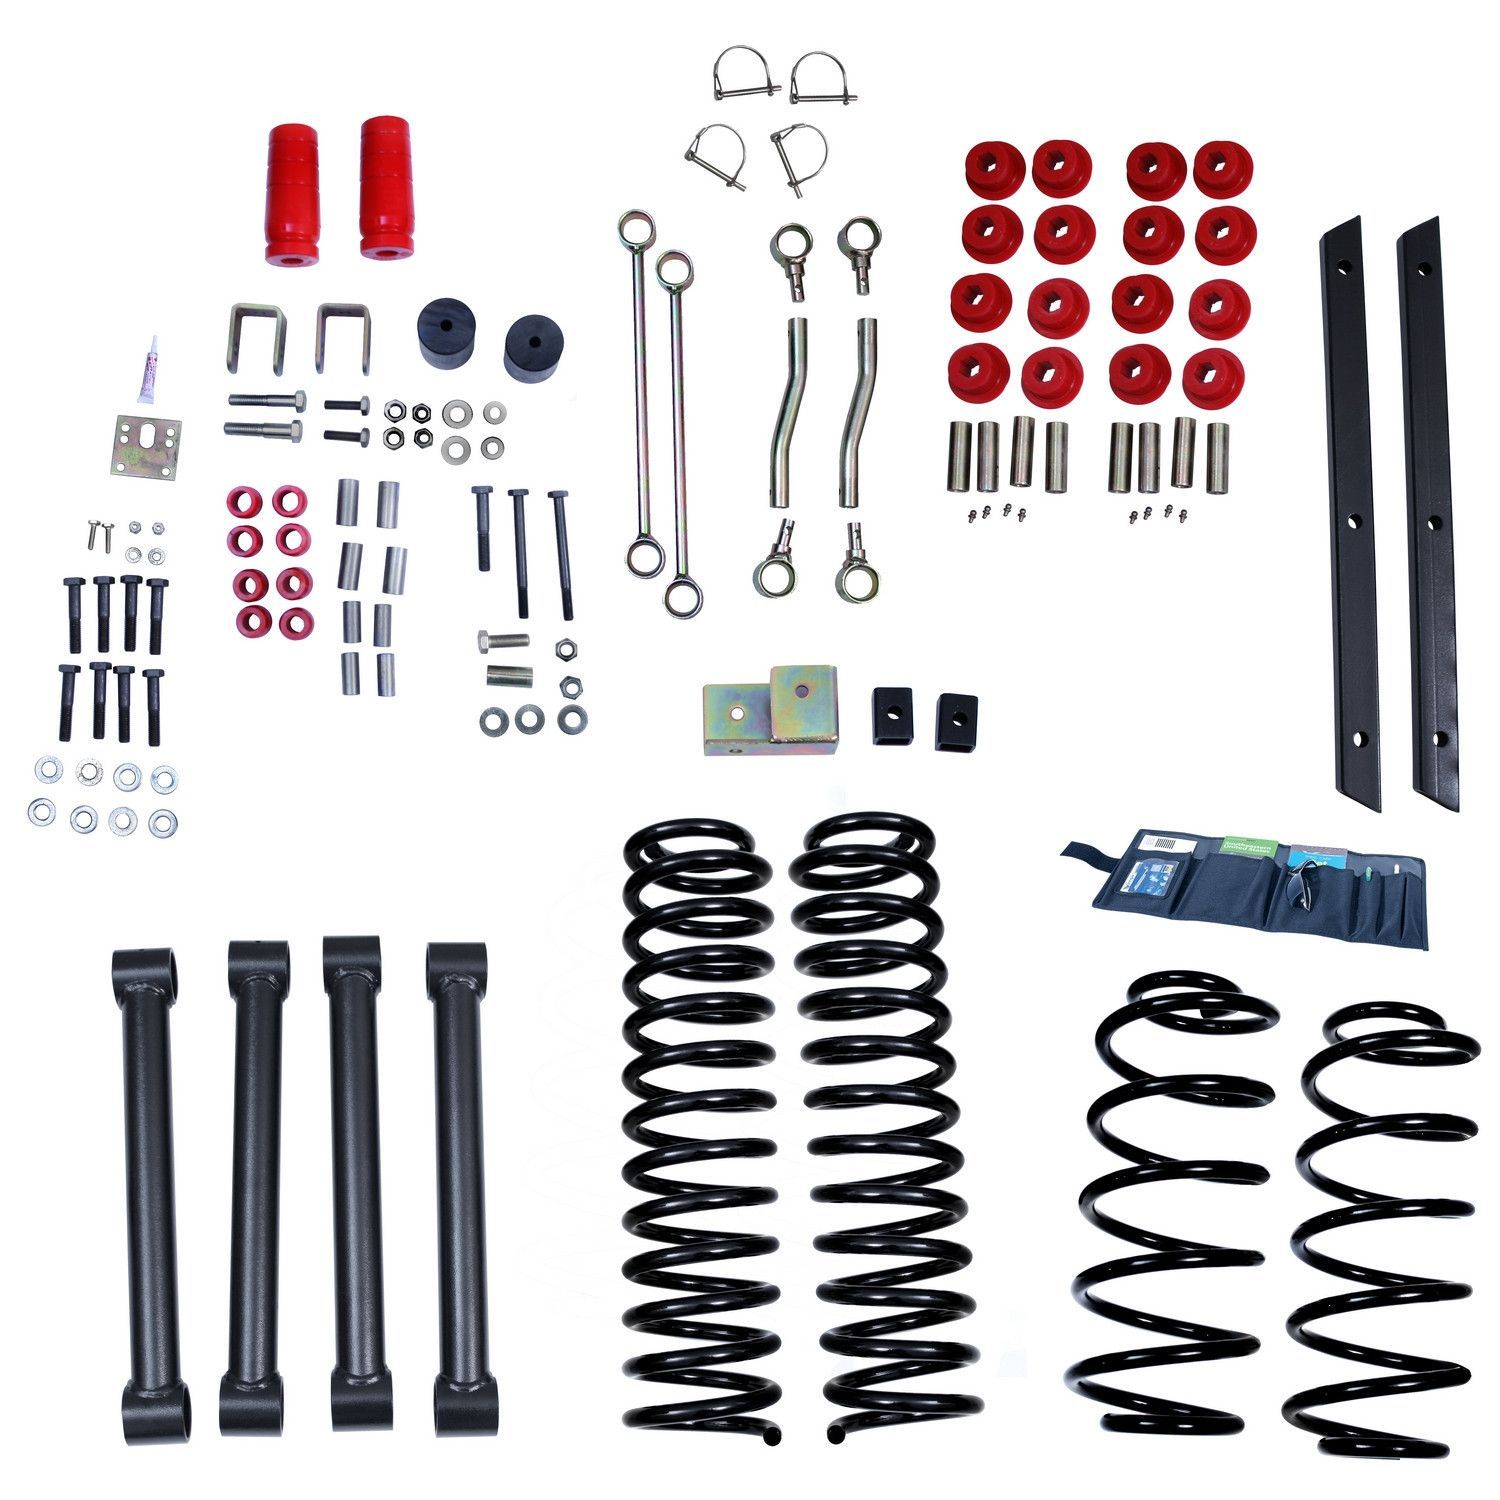 4 Inch Lift Kit without Shocks; 0406 Jeep Wrangler